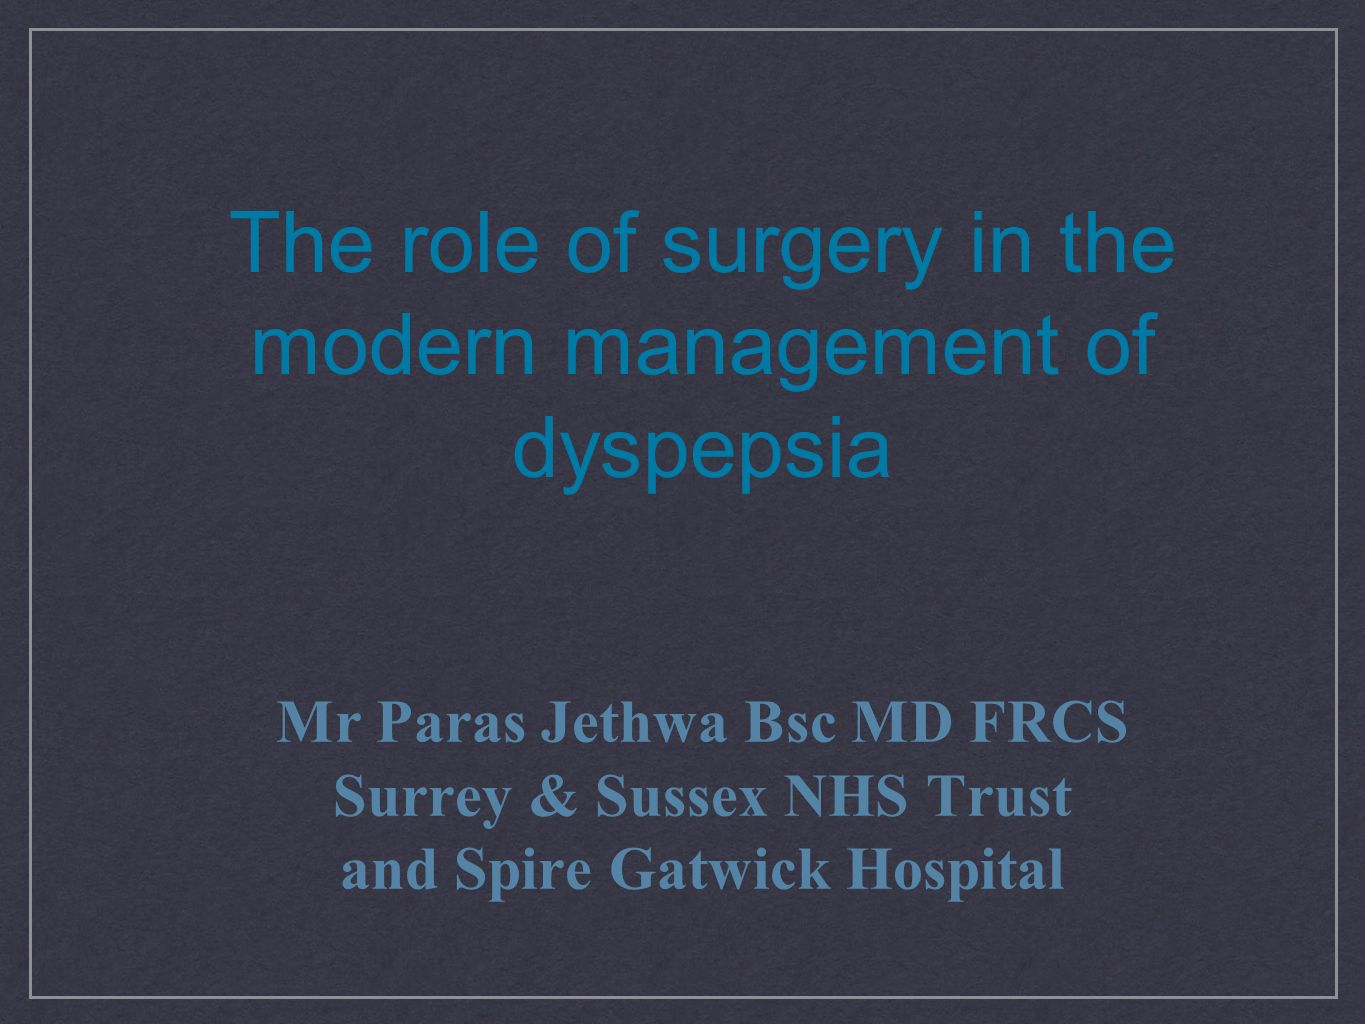 The role of surgery in the modern management of dyspepsia